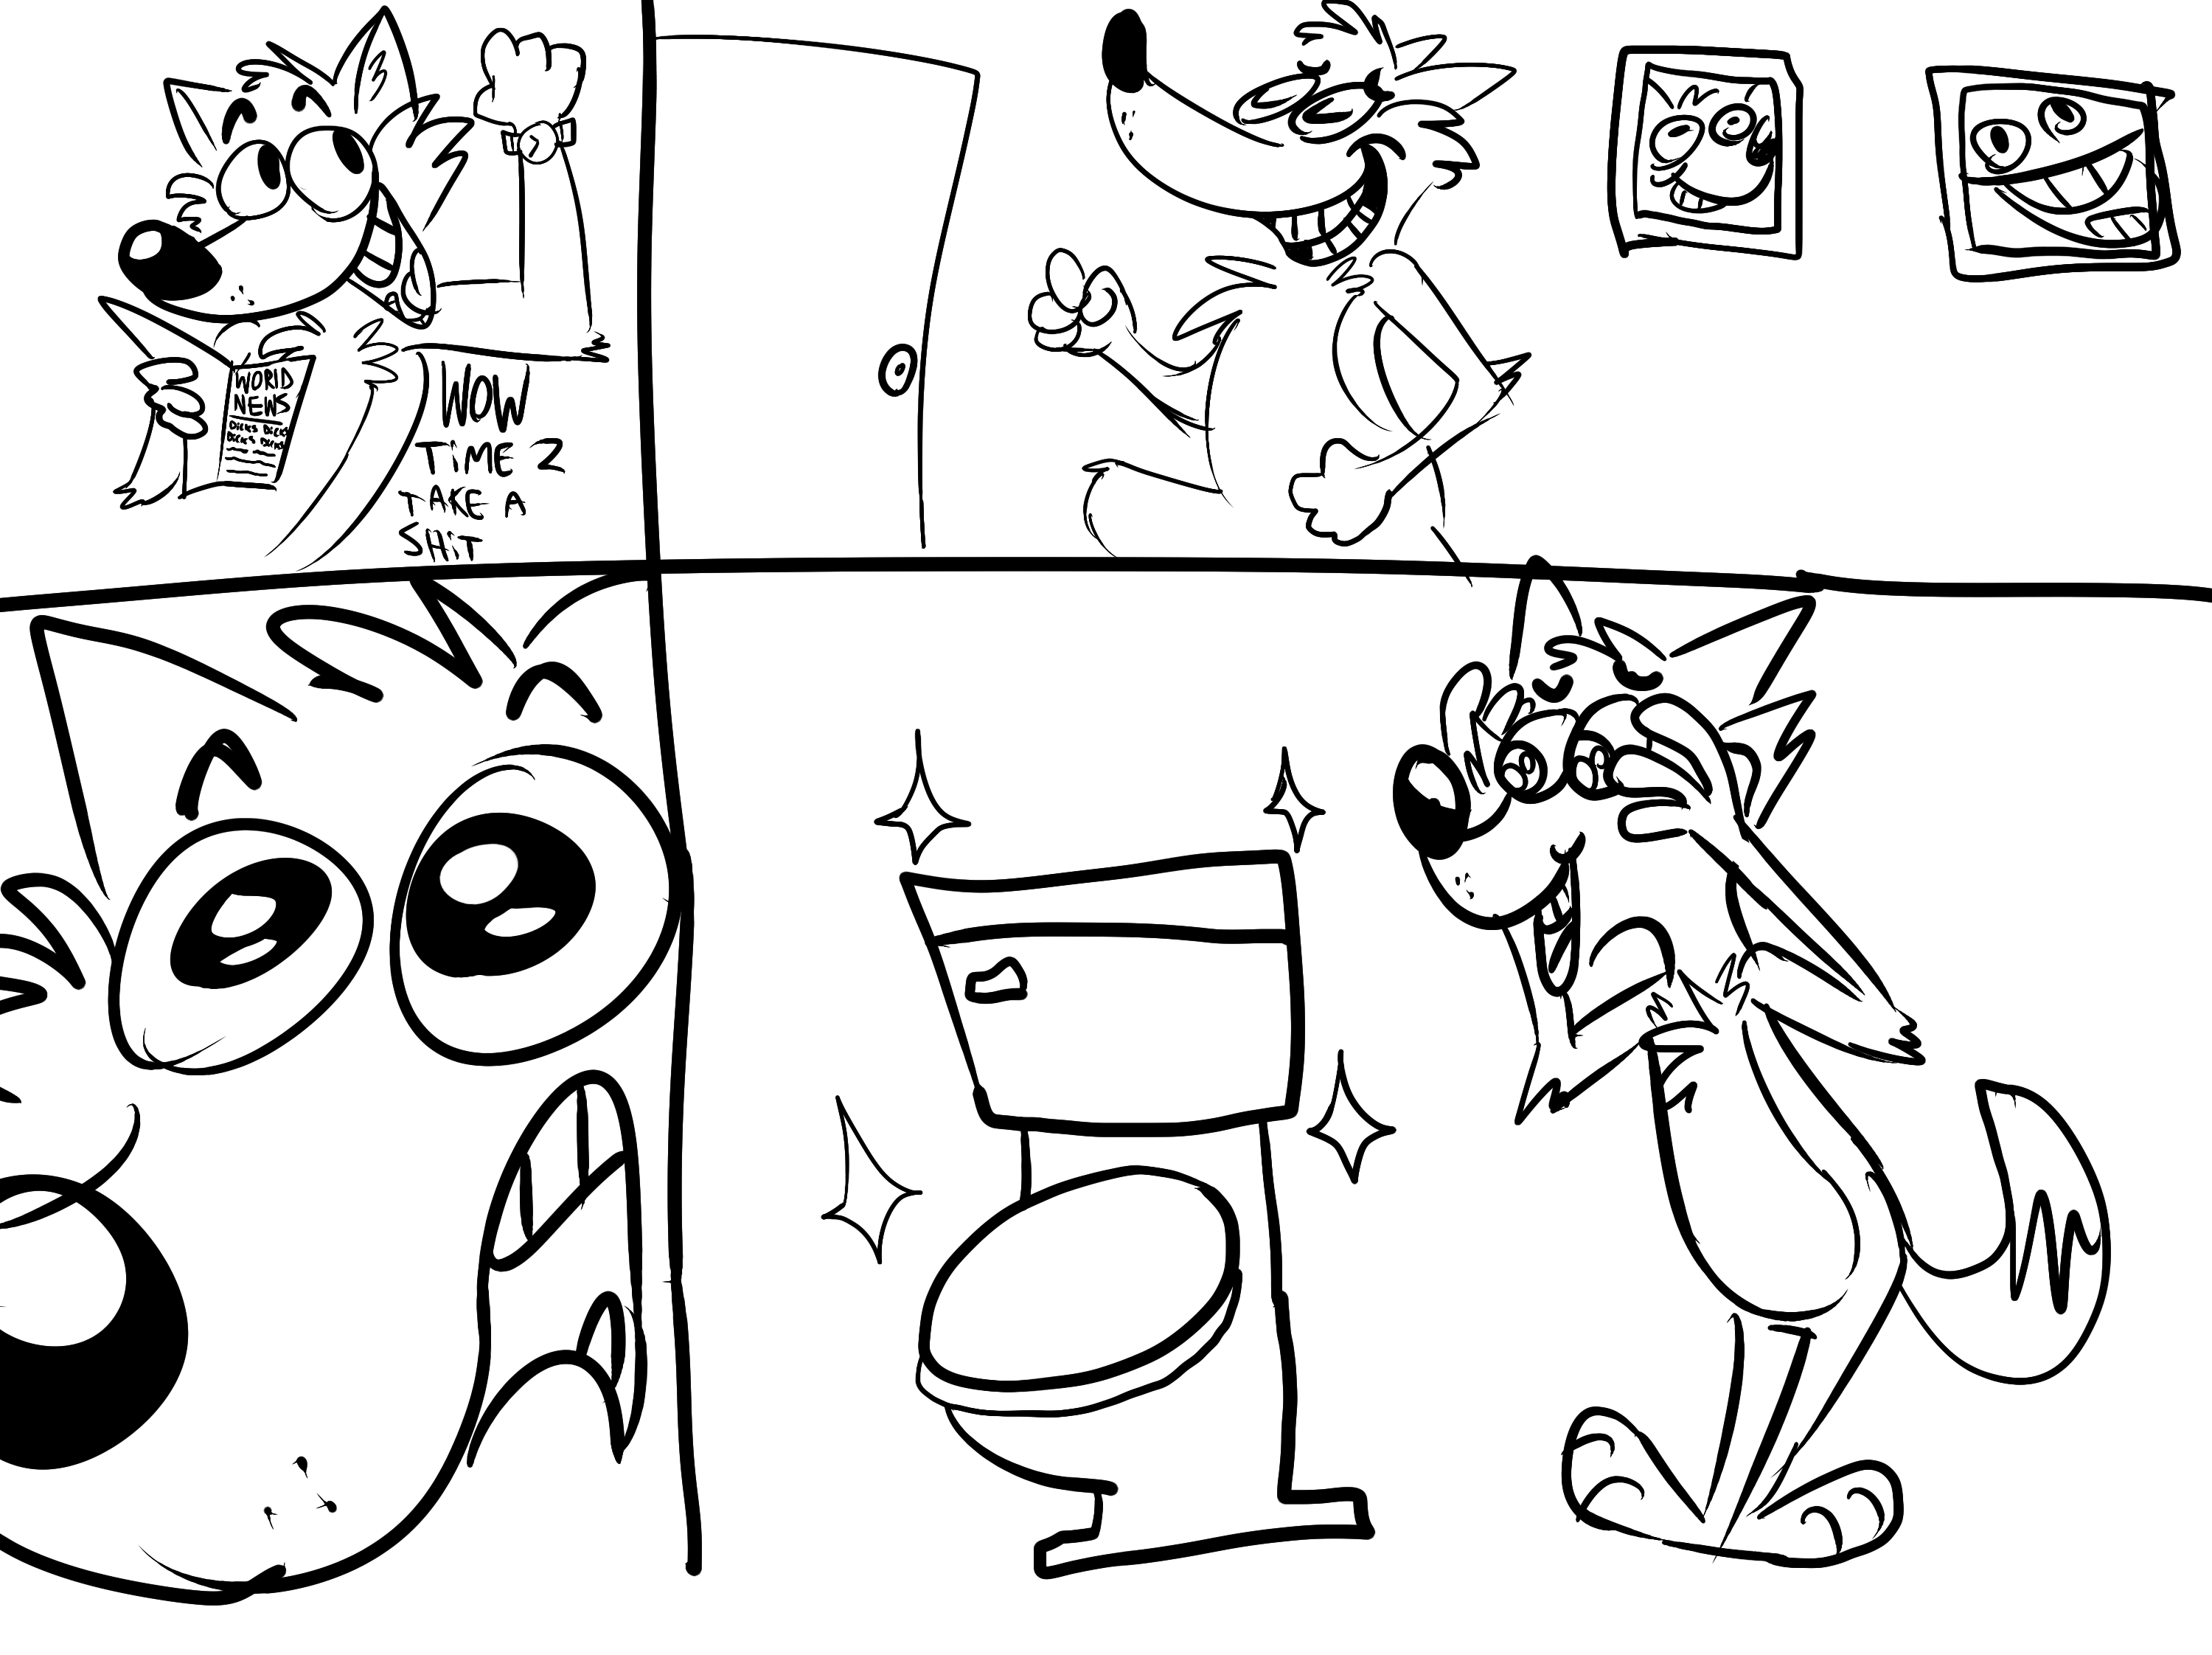 Bathroom Comics Weasyl